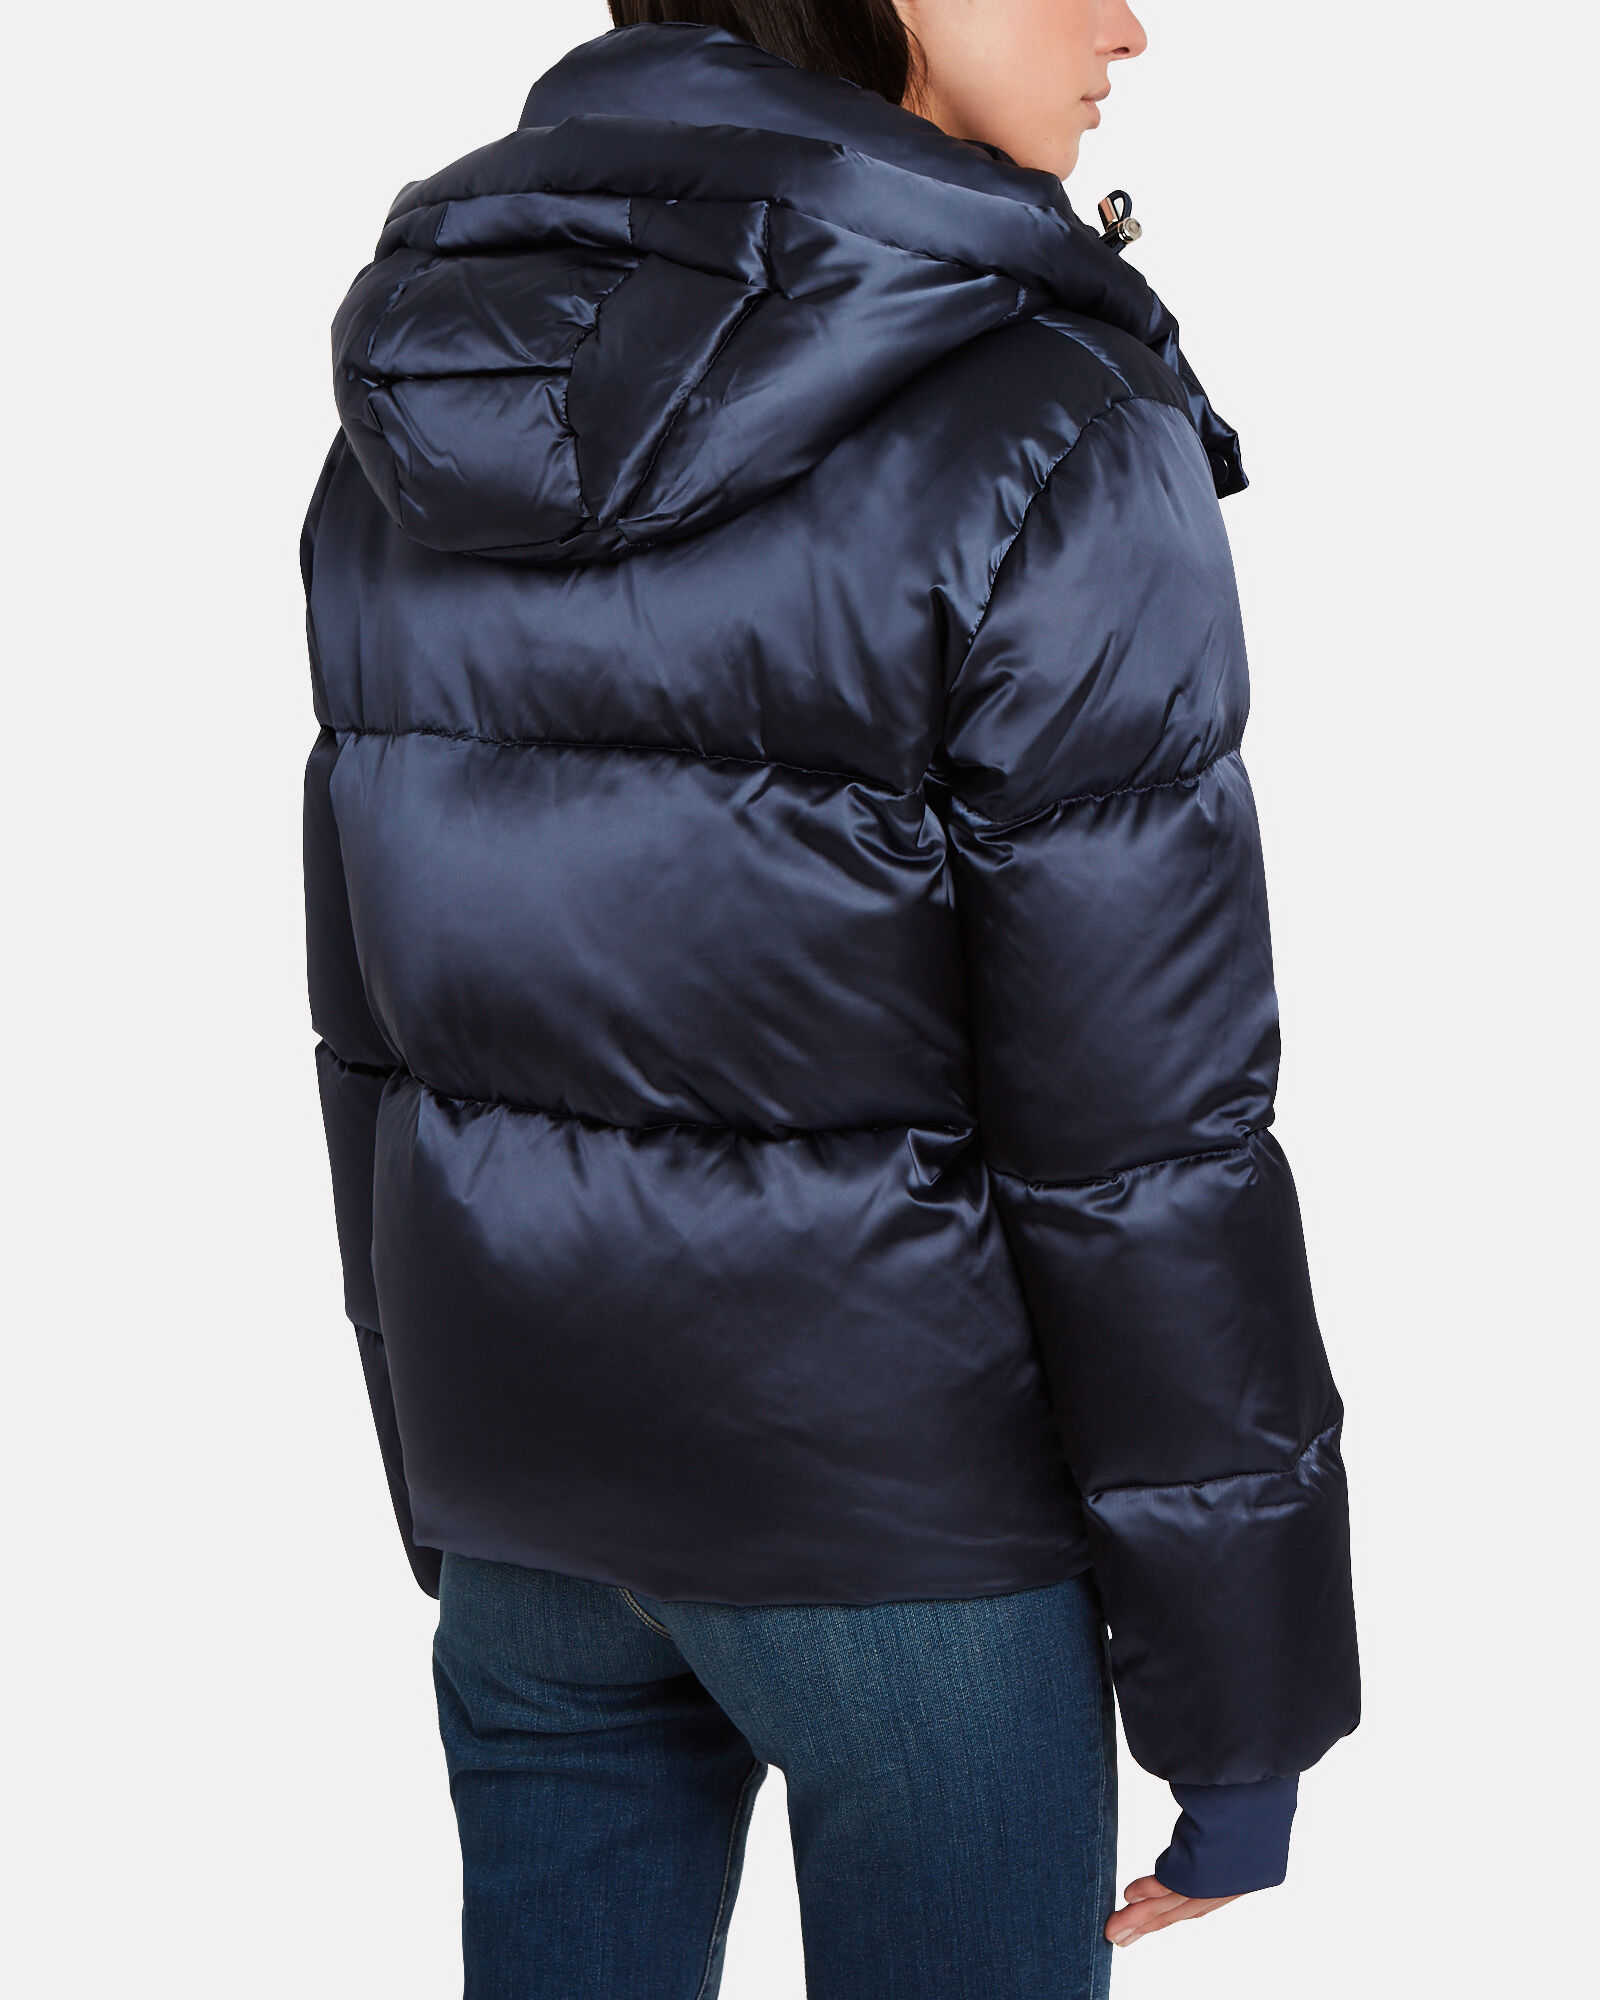 Sydney Satin Down Puffer Jacket, NAVY, hi-res